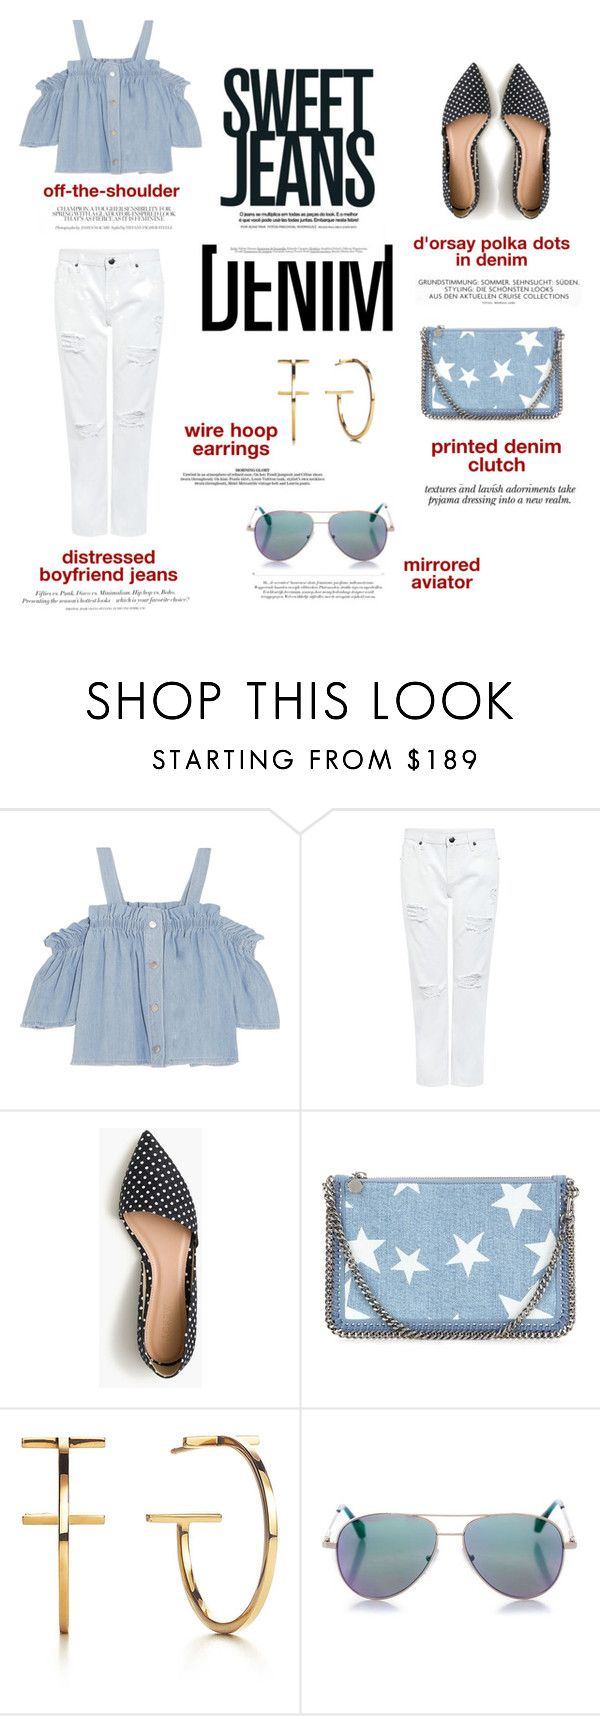 """head to toe in denim"" by cheetakat12 ❤ liked on Polyvore featuring Steve J & Yoni P, Edit, H&M, J.Crew, STELLA McCARTNEY, Nicole, Cutler and Gross and Denimondenim"